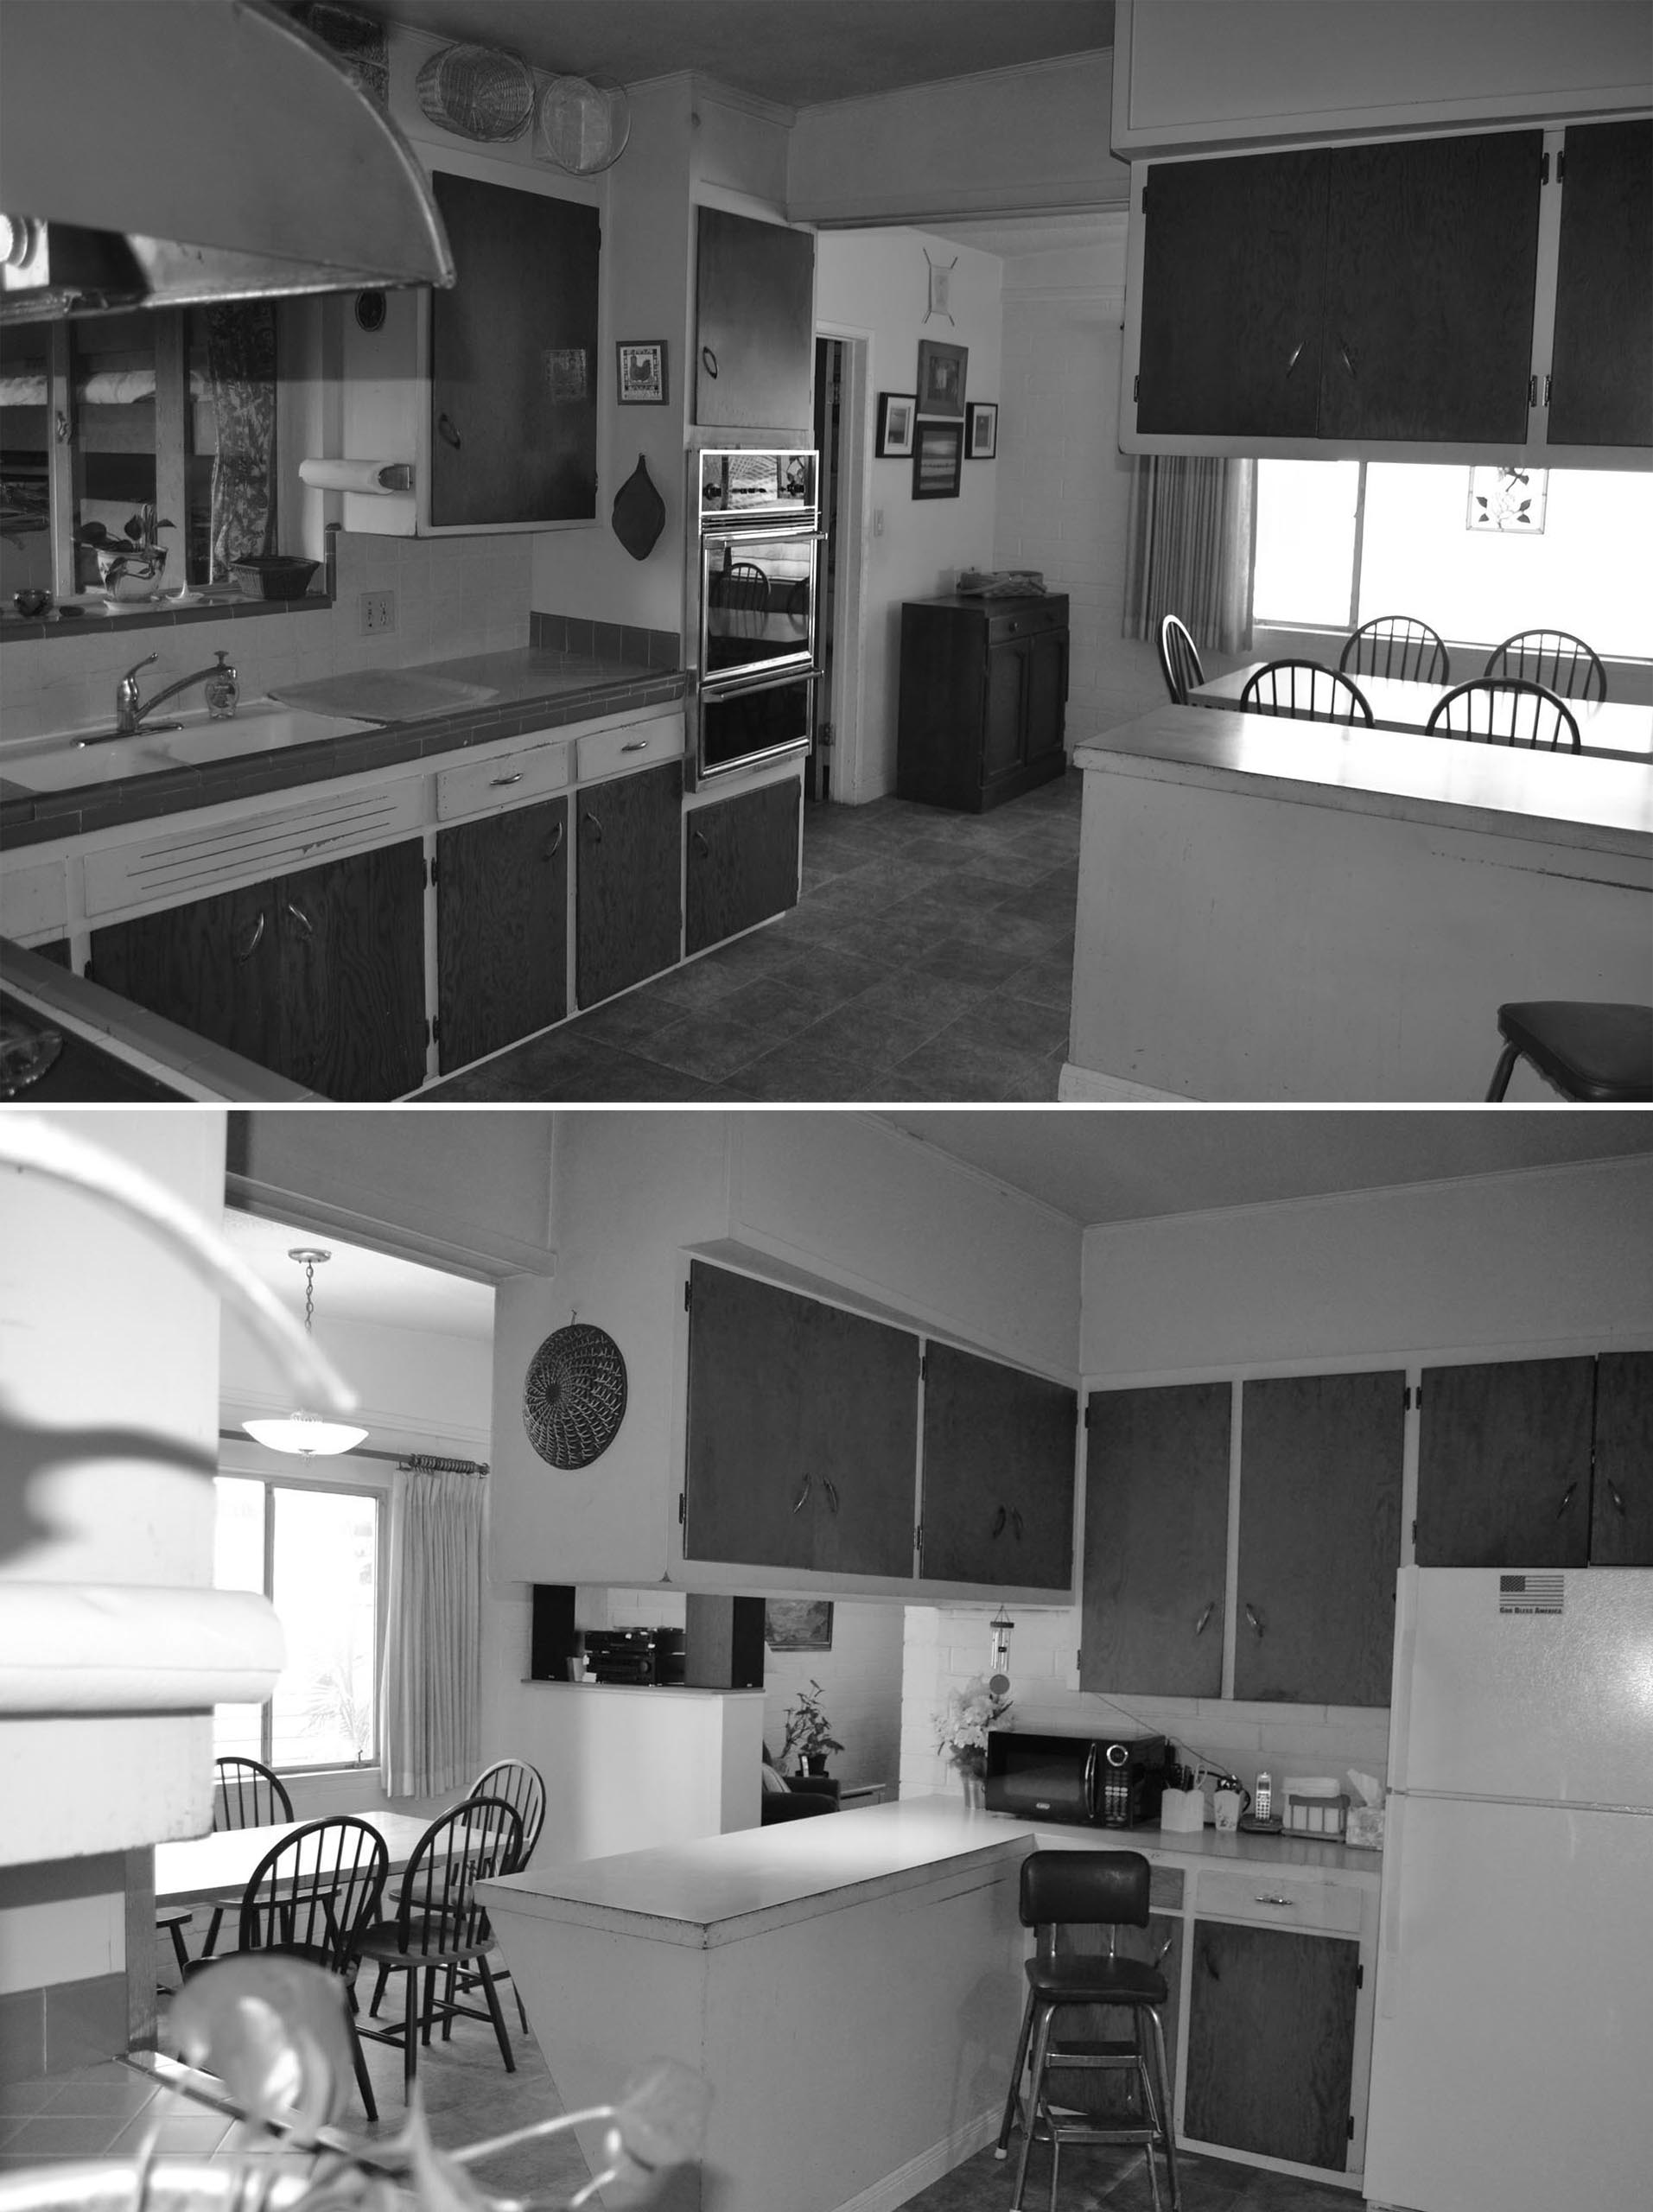 BEFORE PHOTO - The original kitchen had wood front cabinets, a tile countertop, and dated appliances.